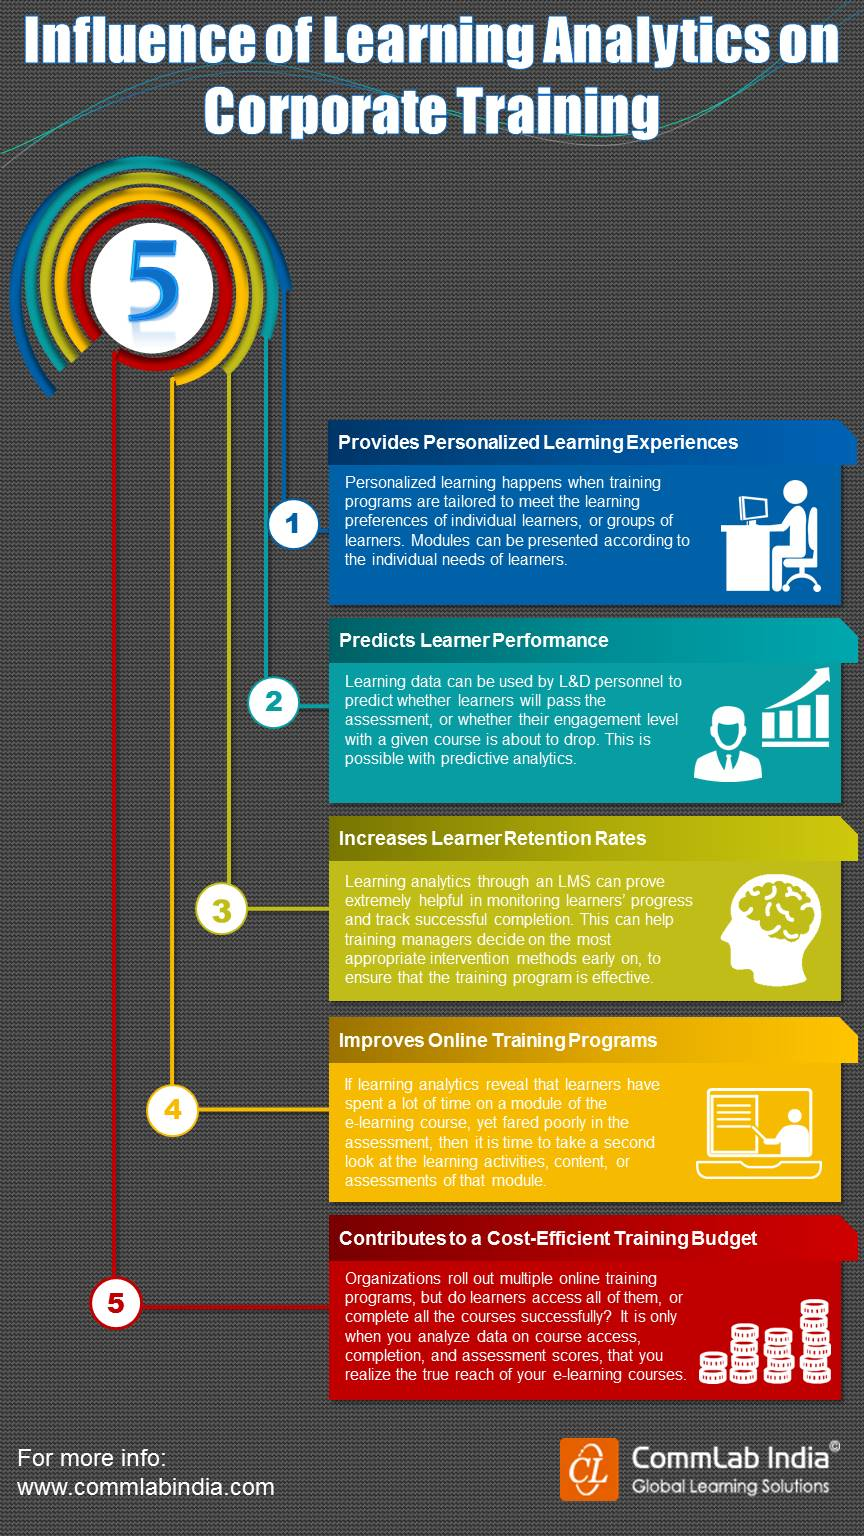 Influence of Learning Analytics on Corporate Training [Infographic]